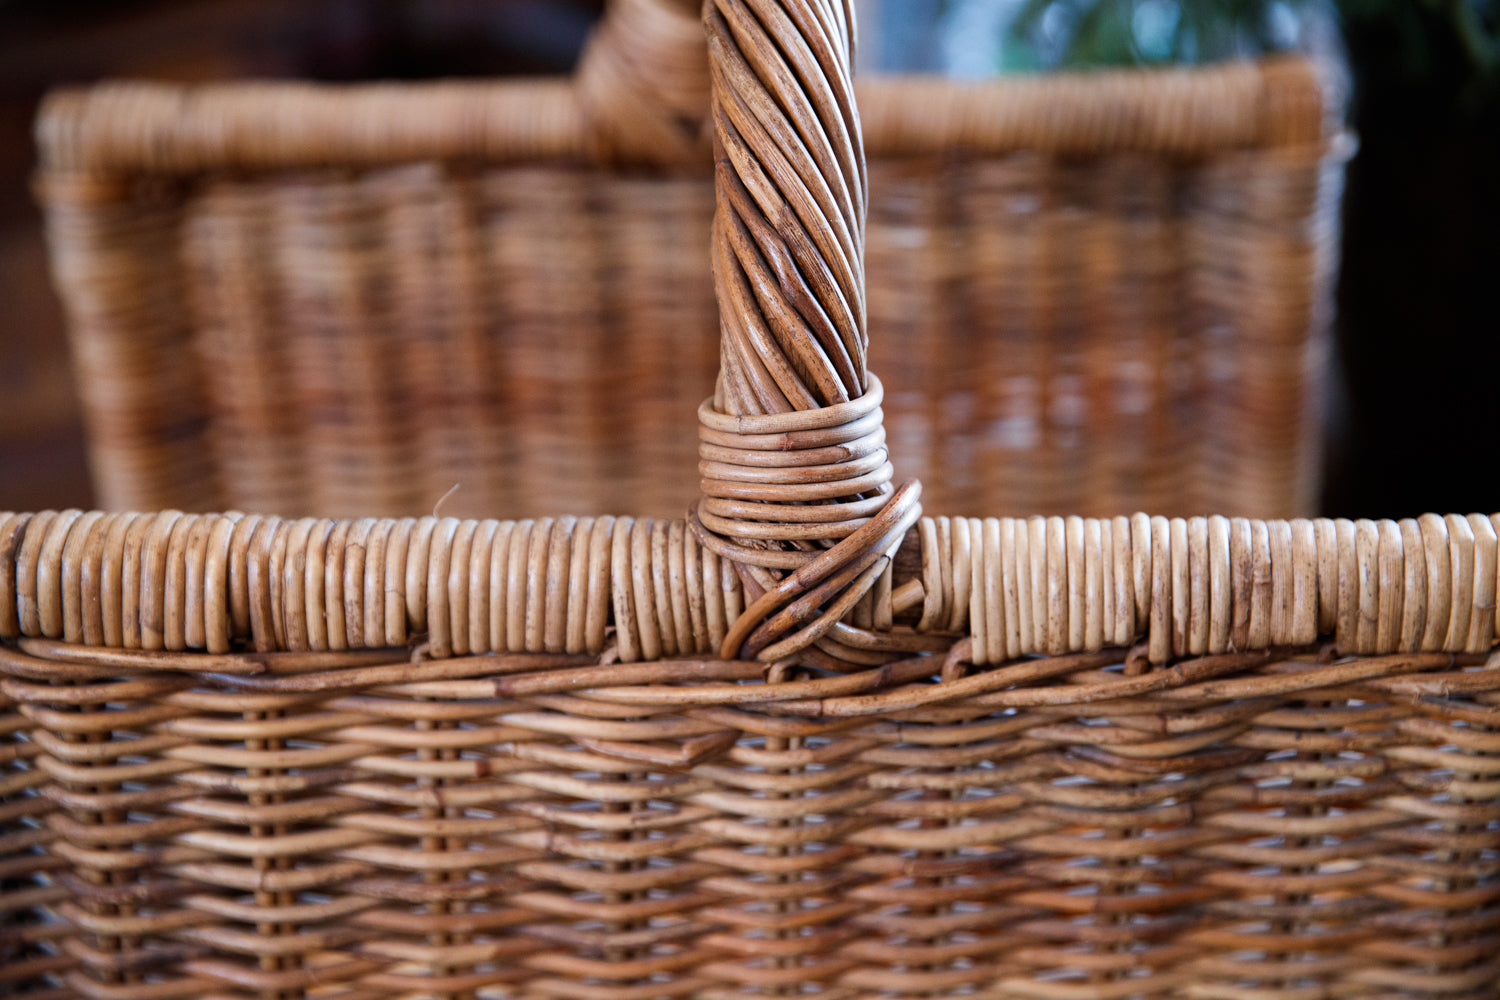 French Bakery Basket